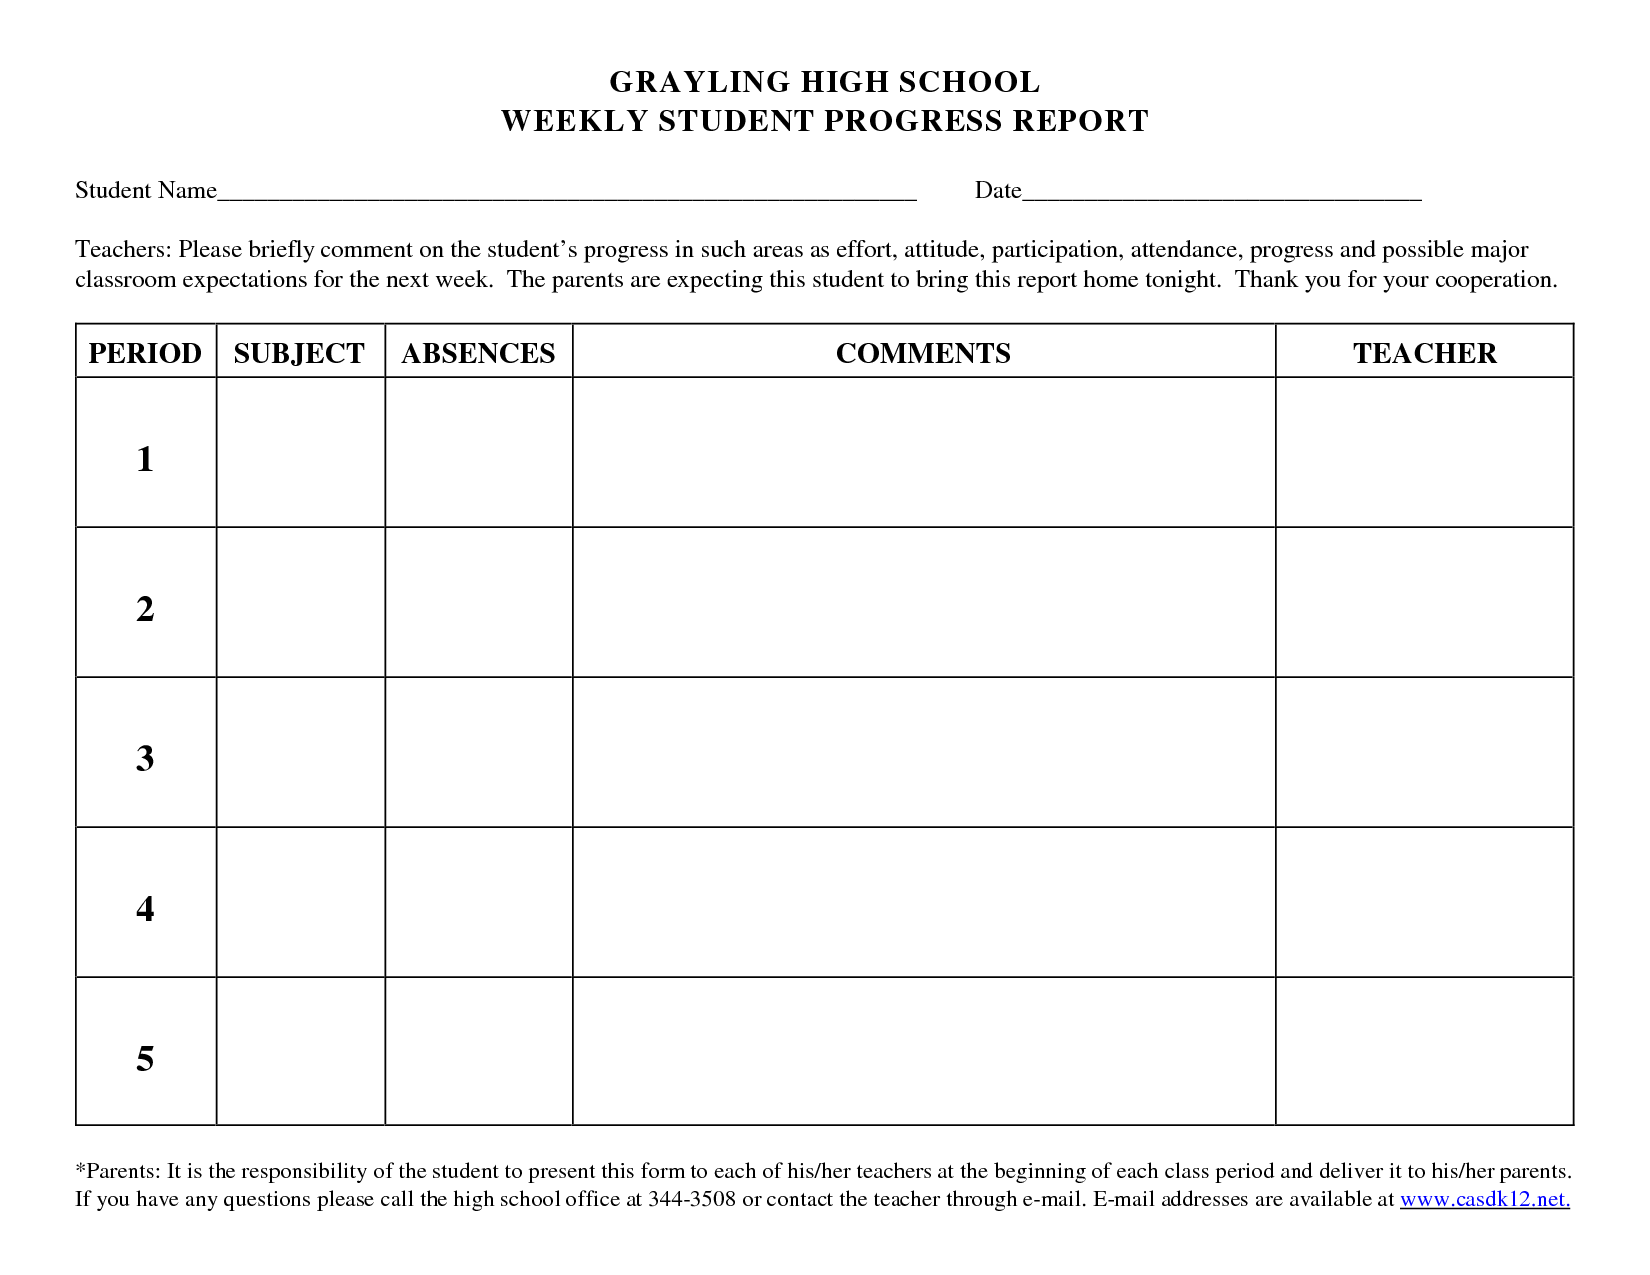 Template For Progress Report Elementary School free congratulation – Format of a Progress Report